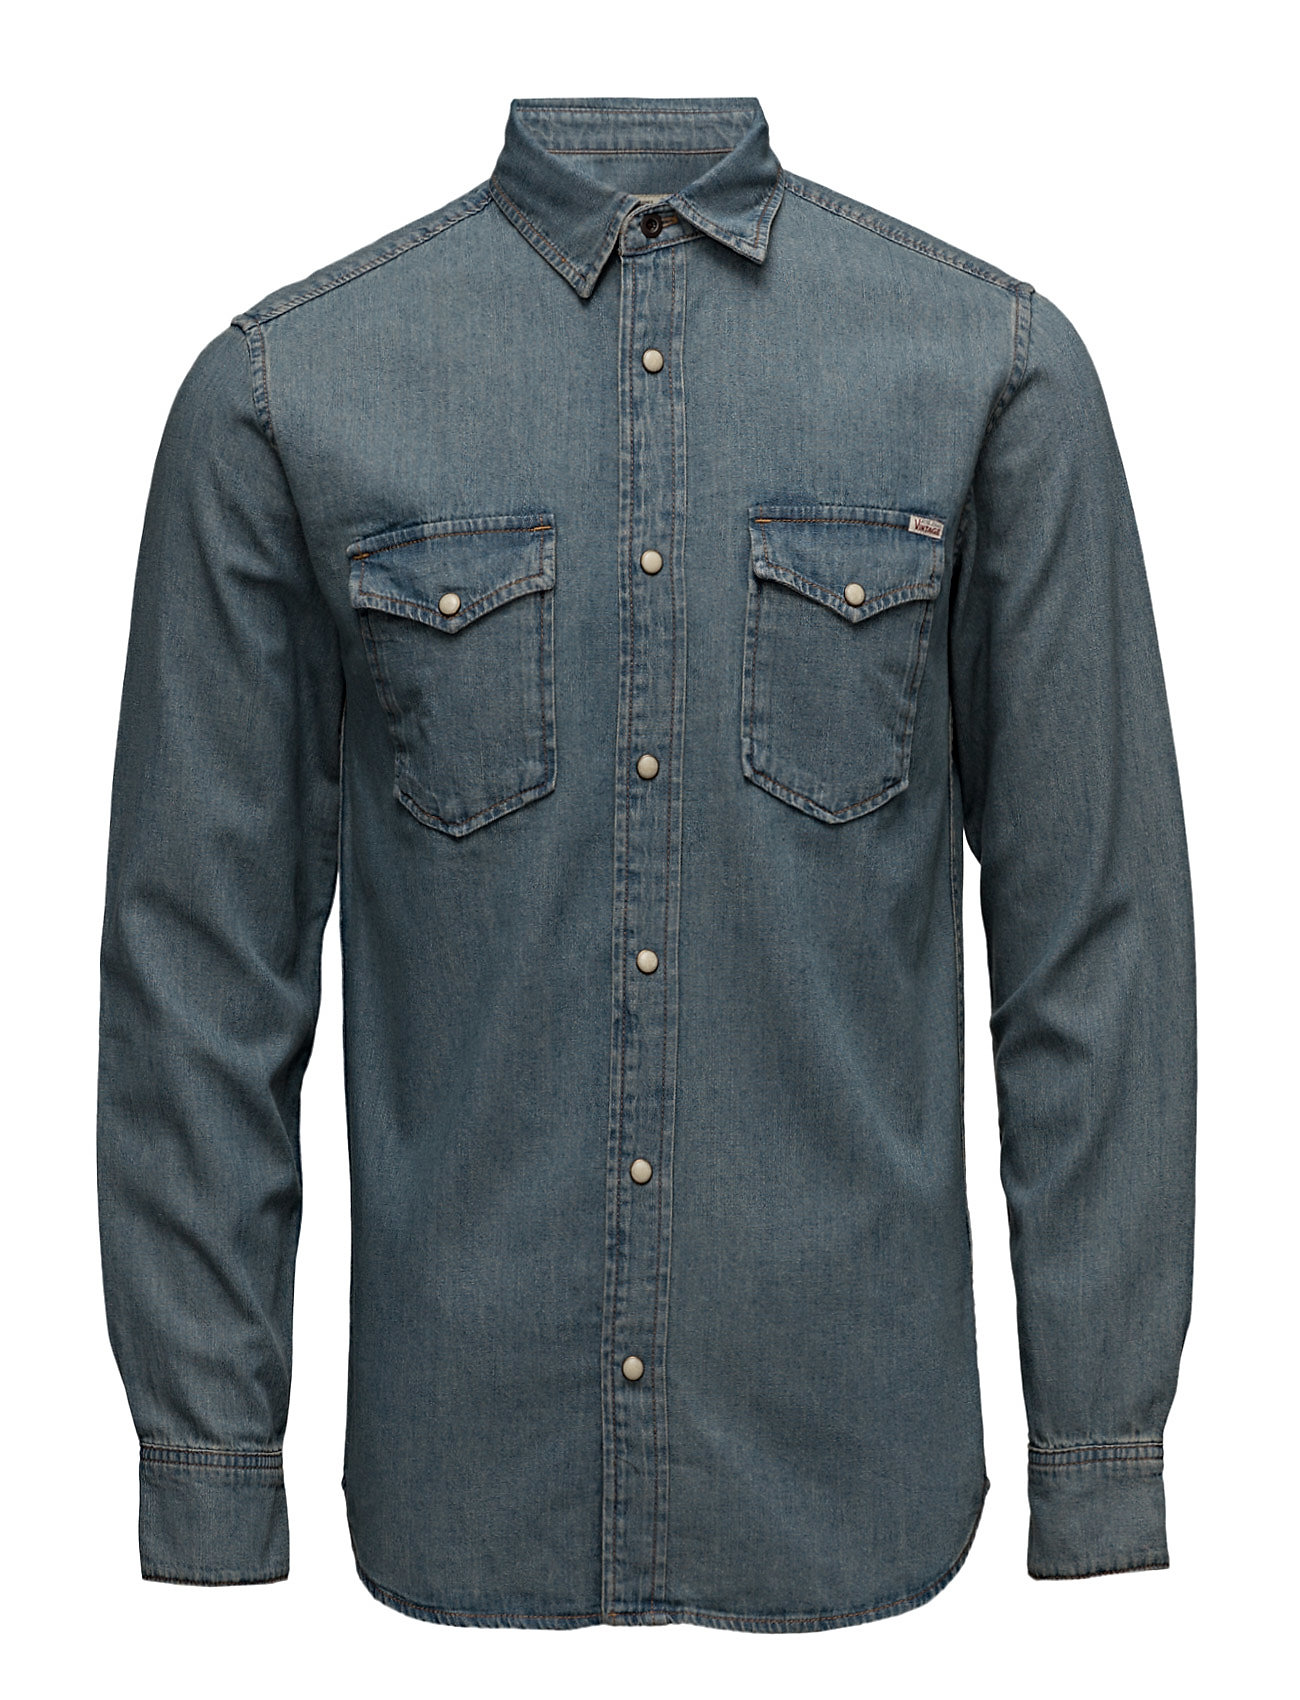 Jjvsheridan Shirt L/S Western Noos Jack & Jones Vintage Casual sko til Mænd i Black Denim